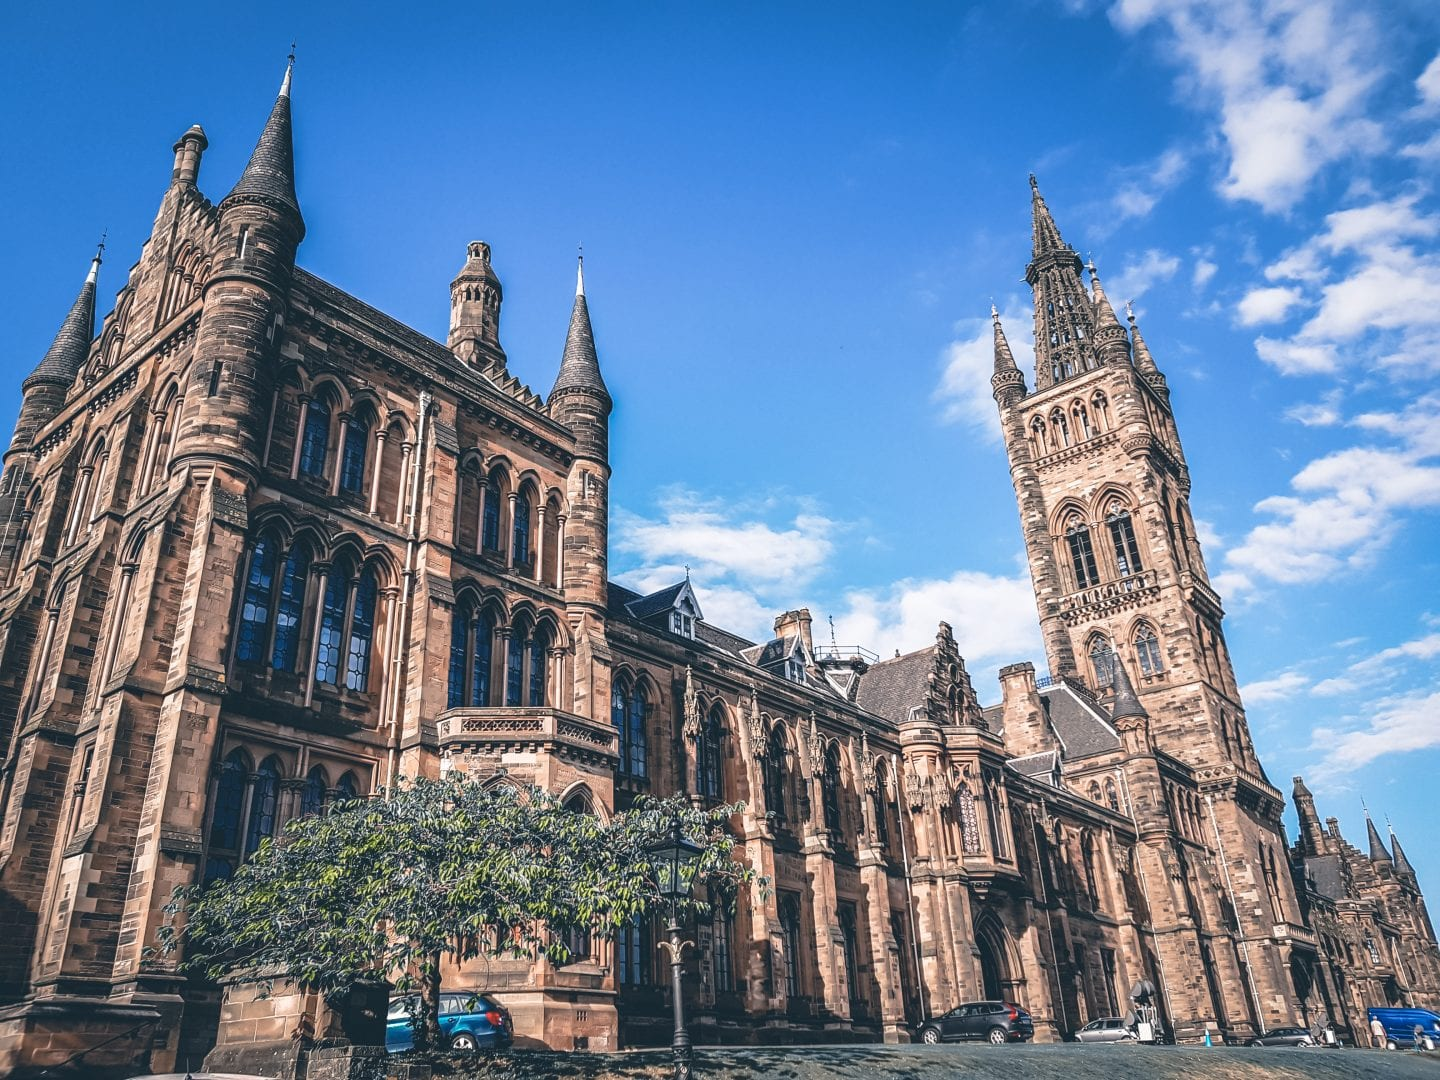 impressive building of the university of glasgow